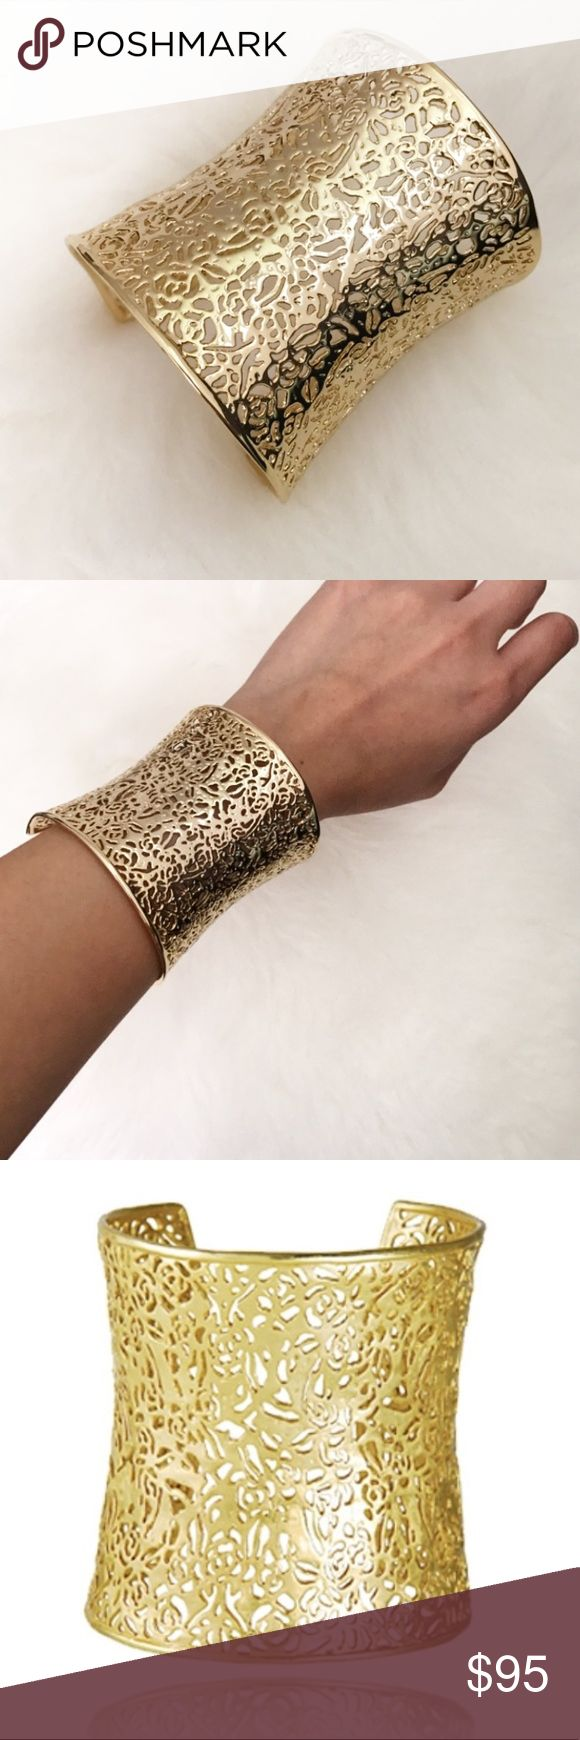 """Kendra Scott Ainsley Cuff Kendra Scott Ainsley Cuff. Never been worn. Comes in original box. 14 karat yellow gold plate. Opening for slip on style. 2 1/2"""" width.  •No Trades  •No PayPal •Instagram: Citrus and Lavender Lane Kendra Scott Jewelry Bracelets"""